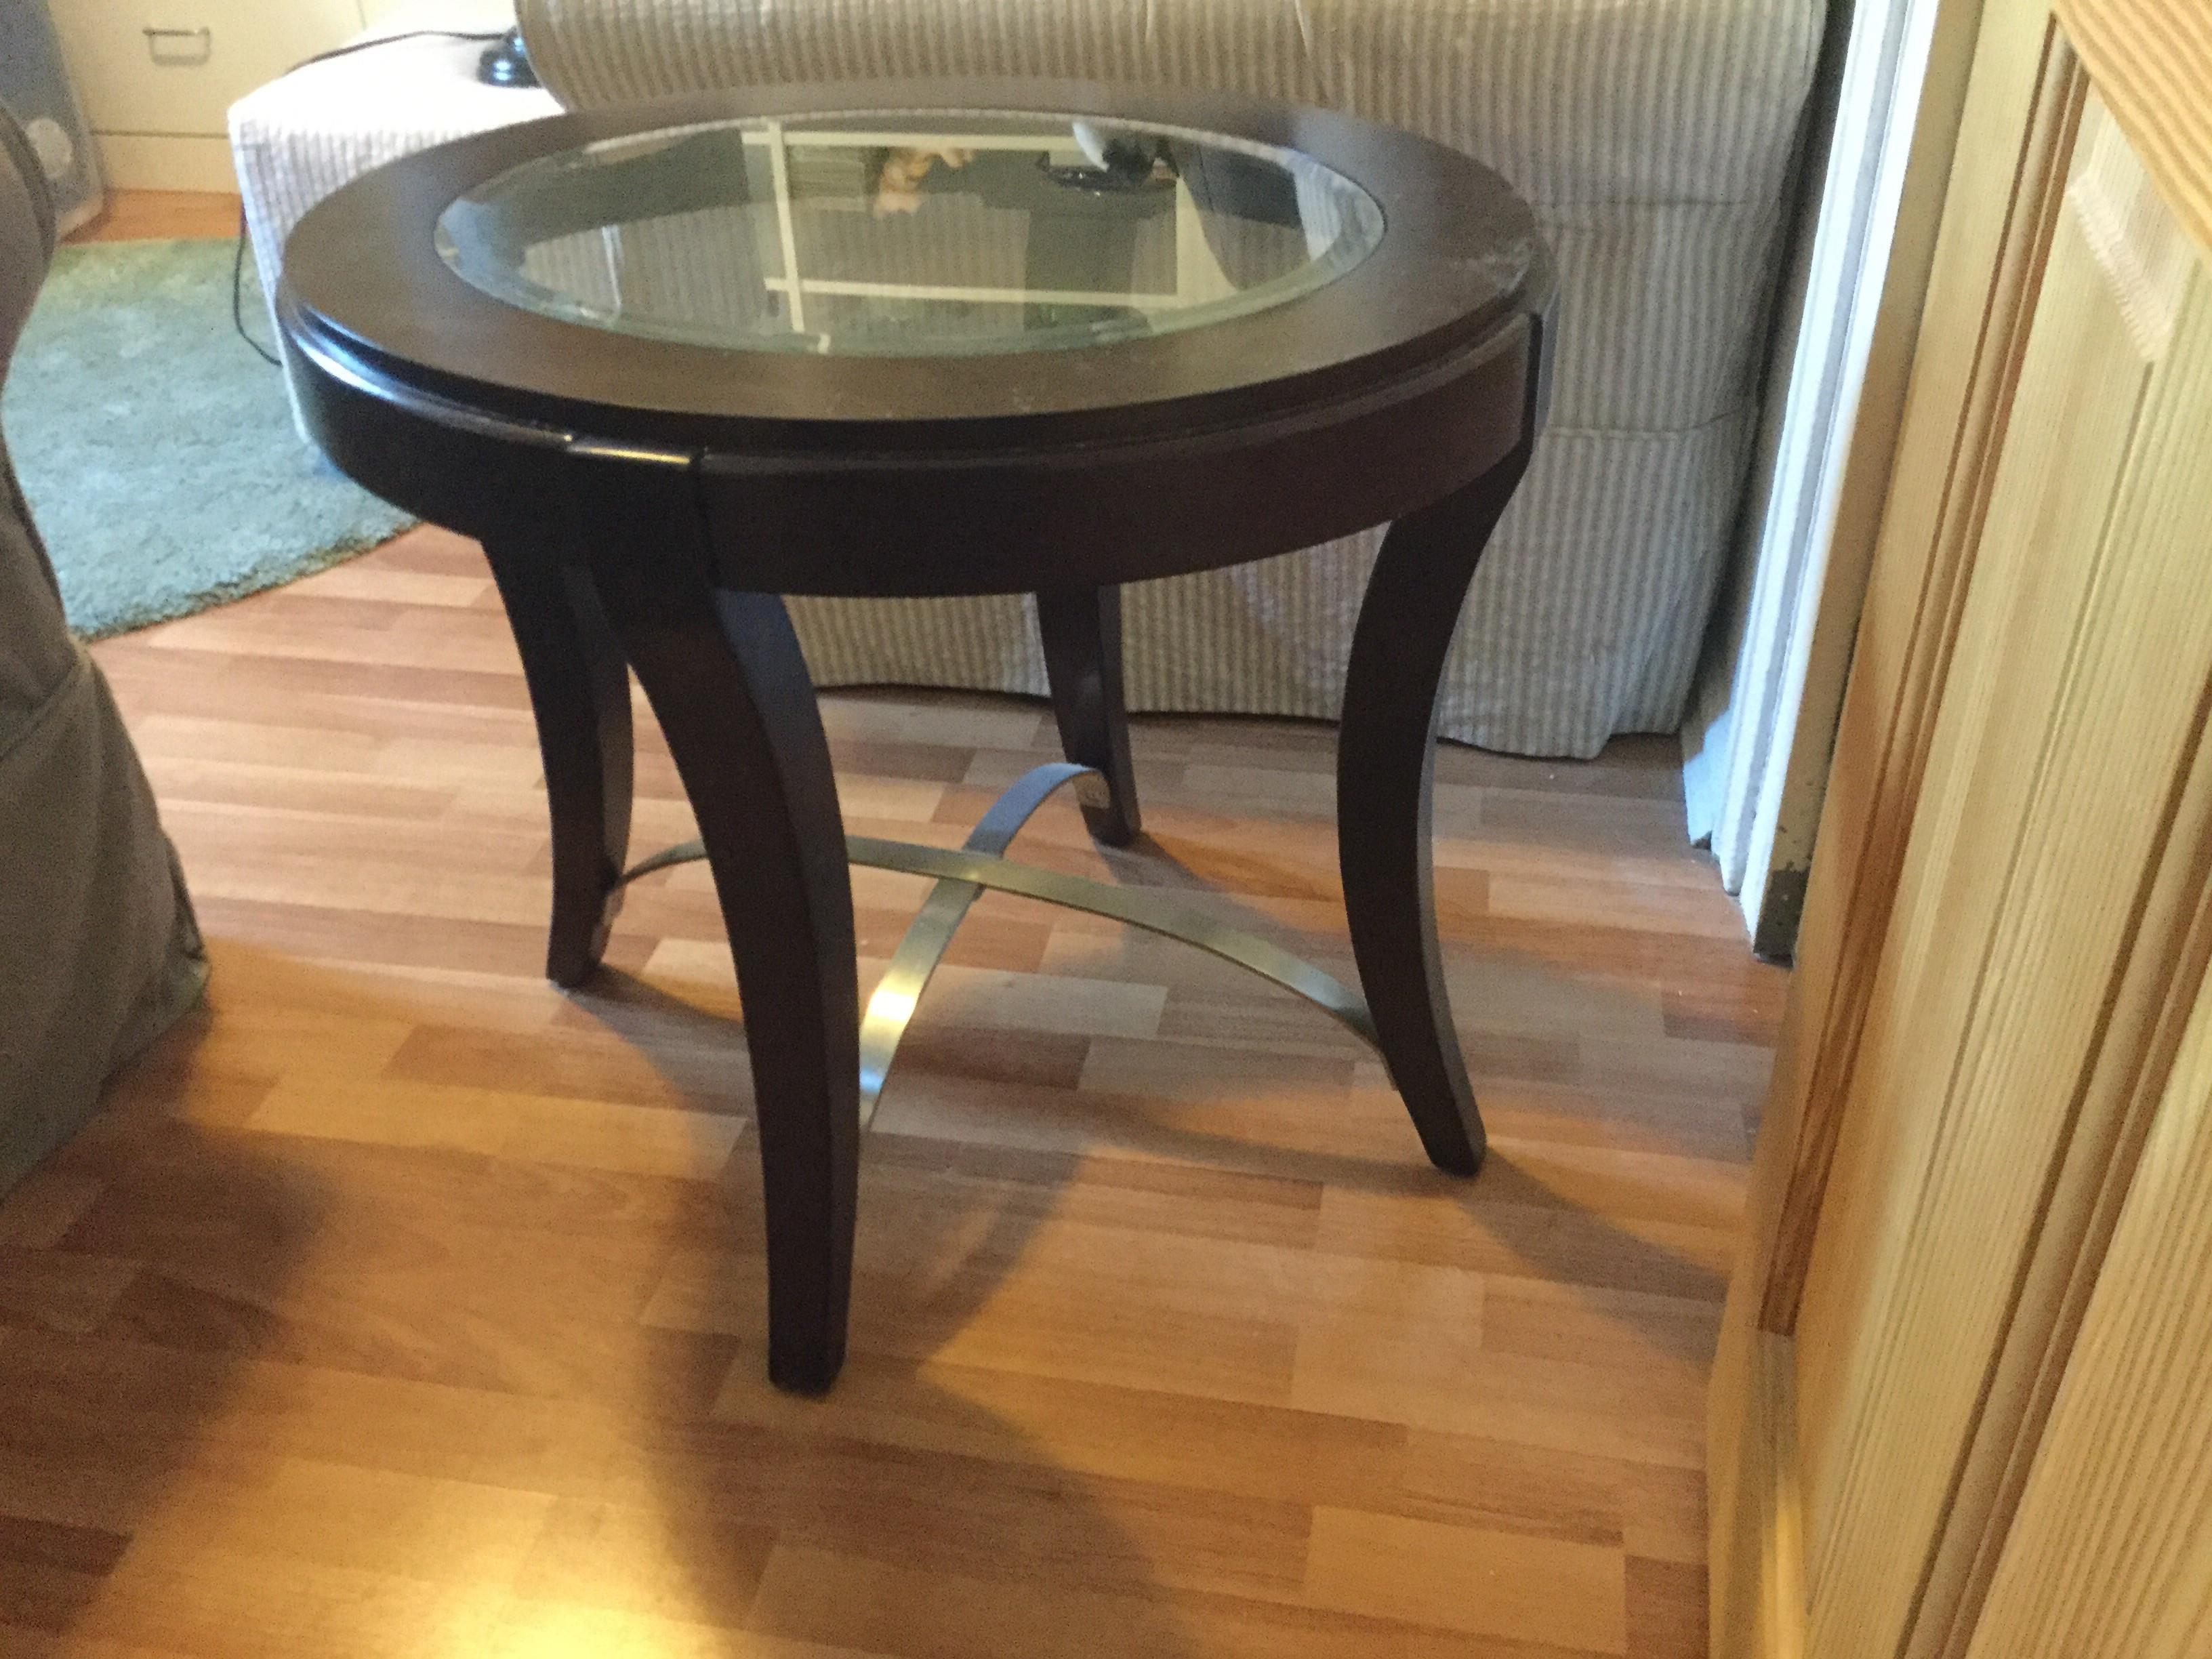 Raymour & Flanigan End Table w/ Glass Insert